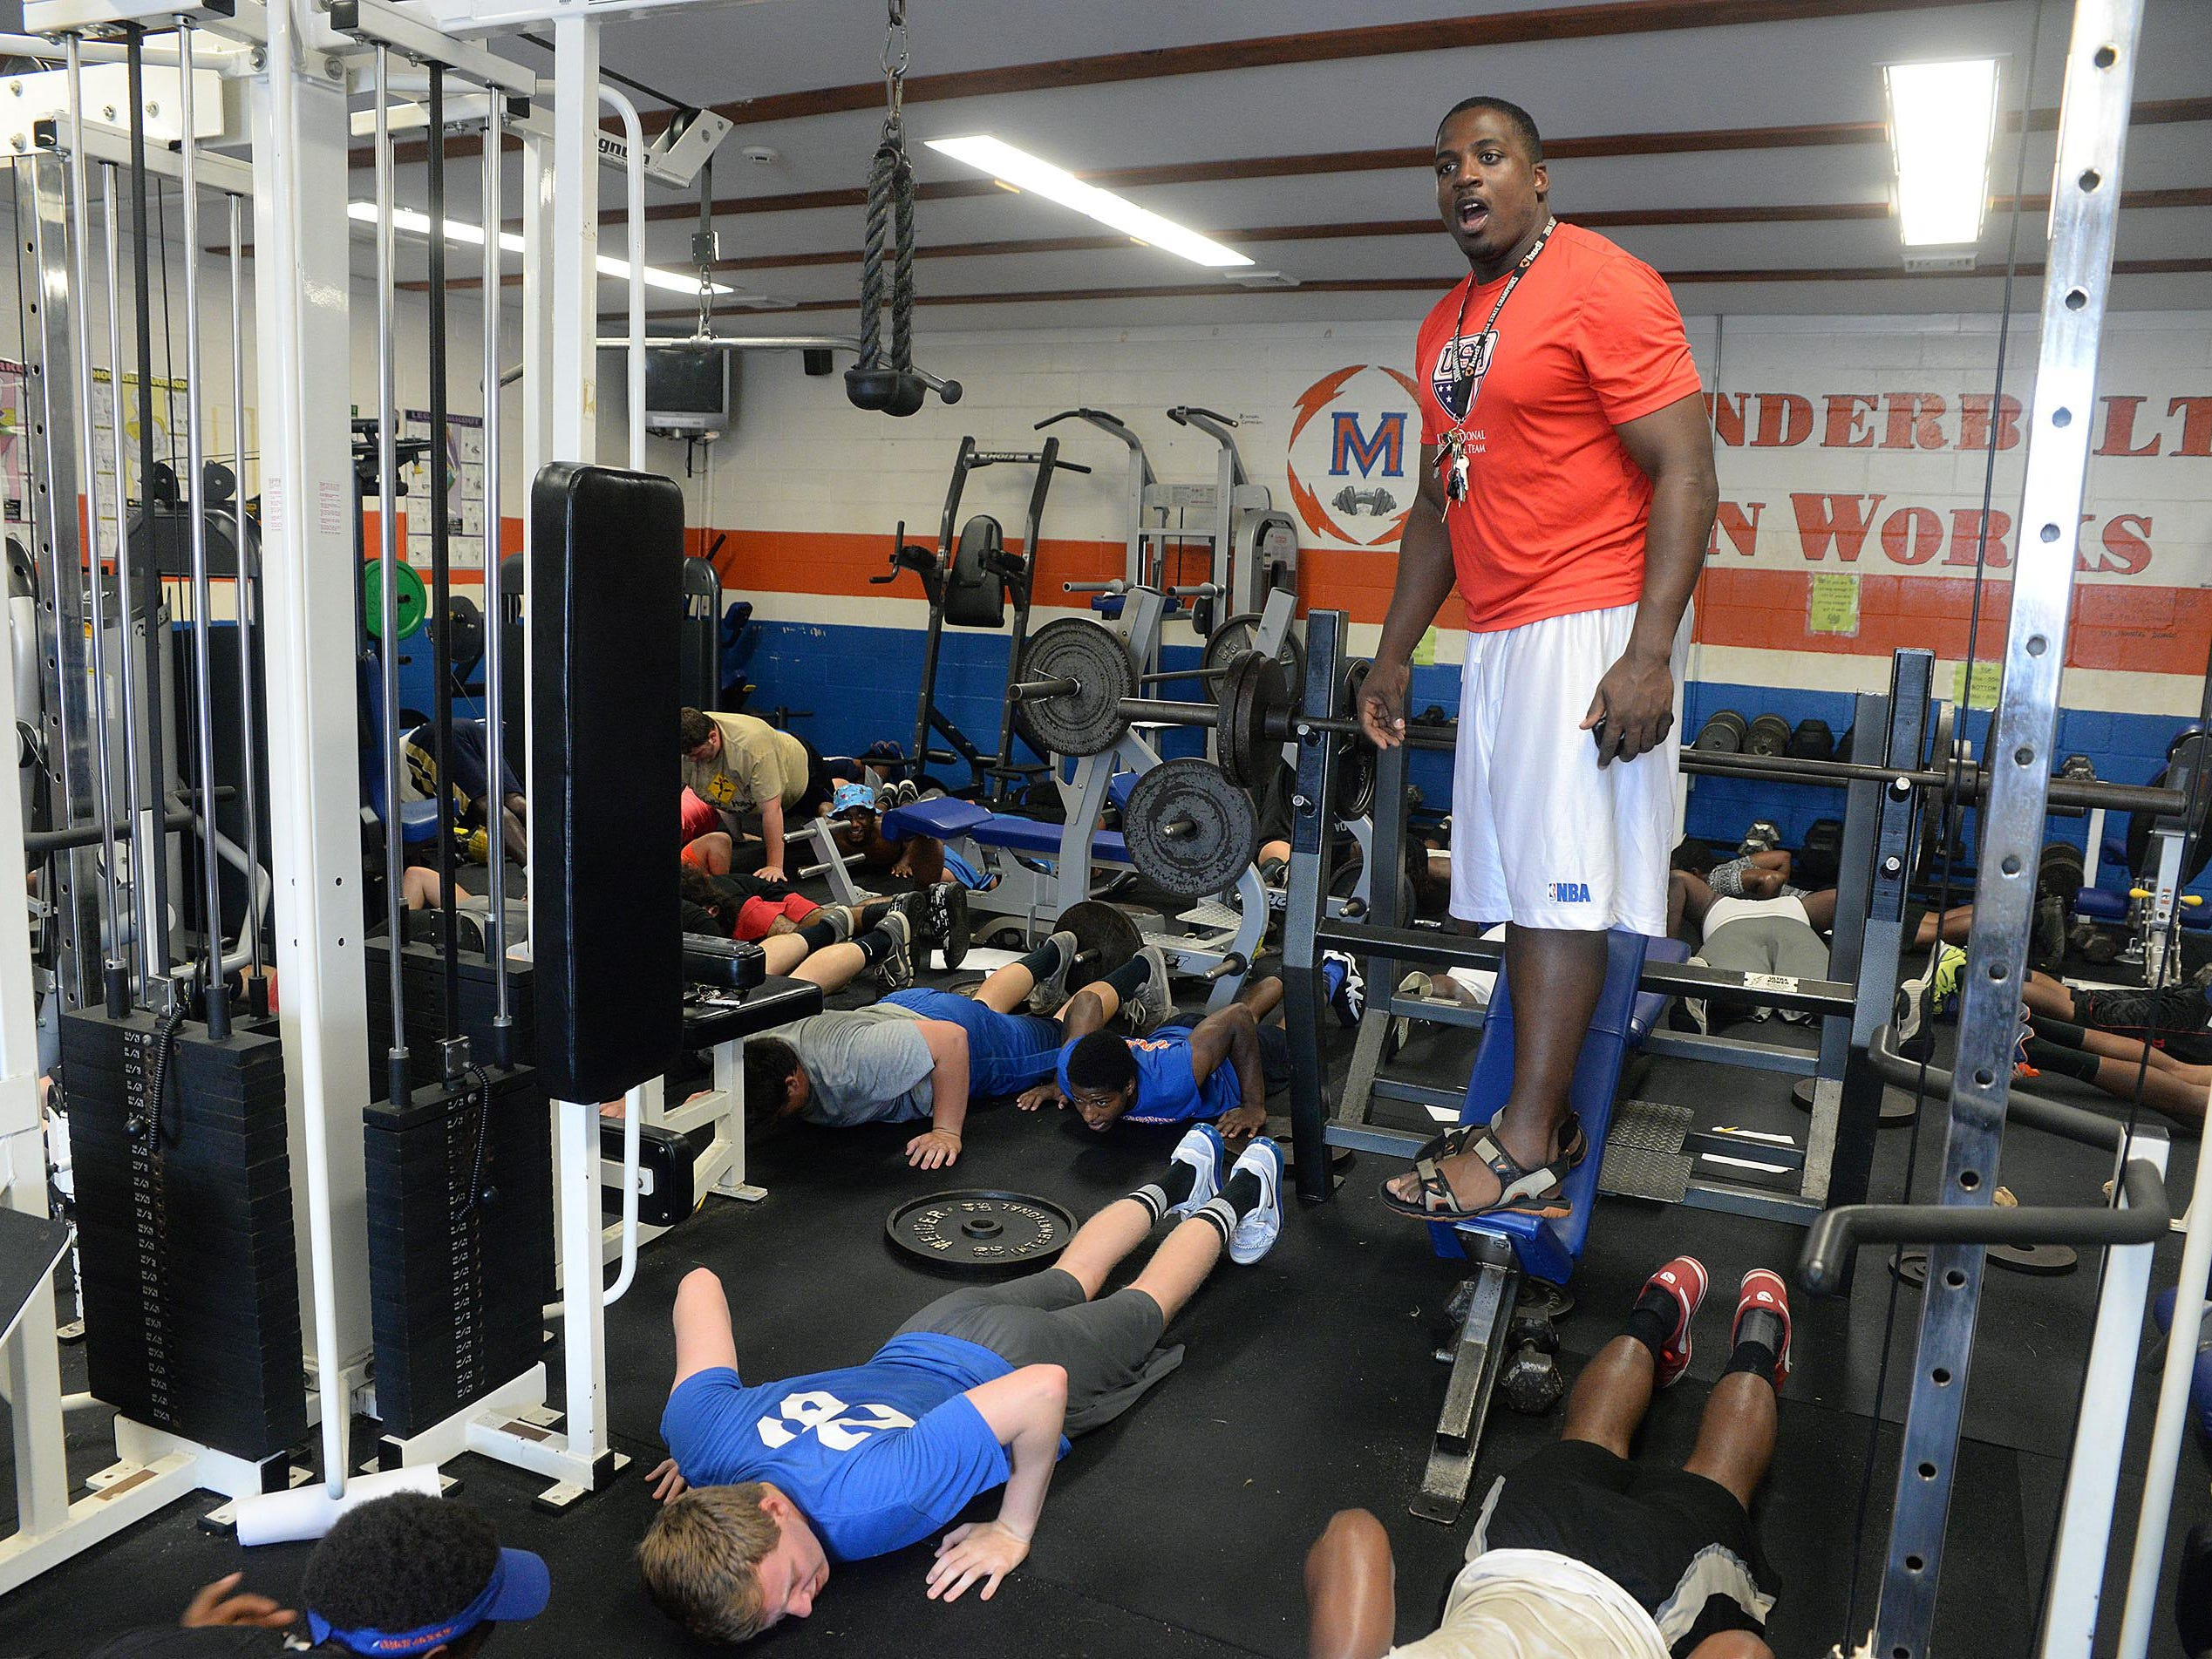 Millville football coach Dennis Thomas leads a strength and power training session in the school's weight room.